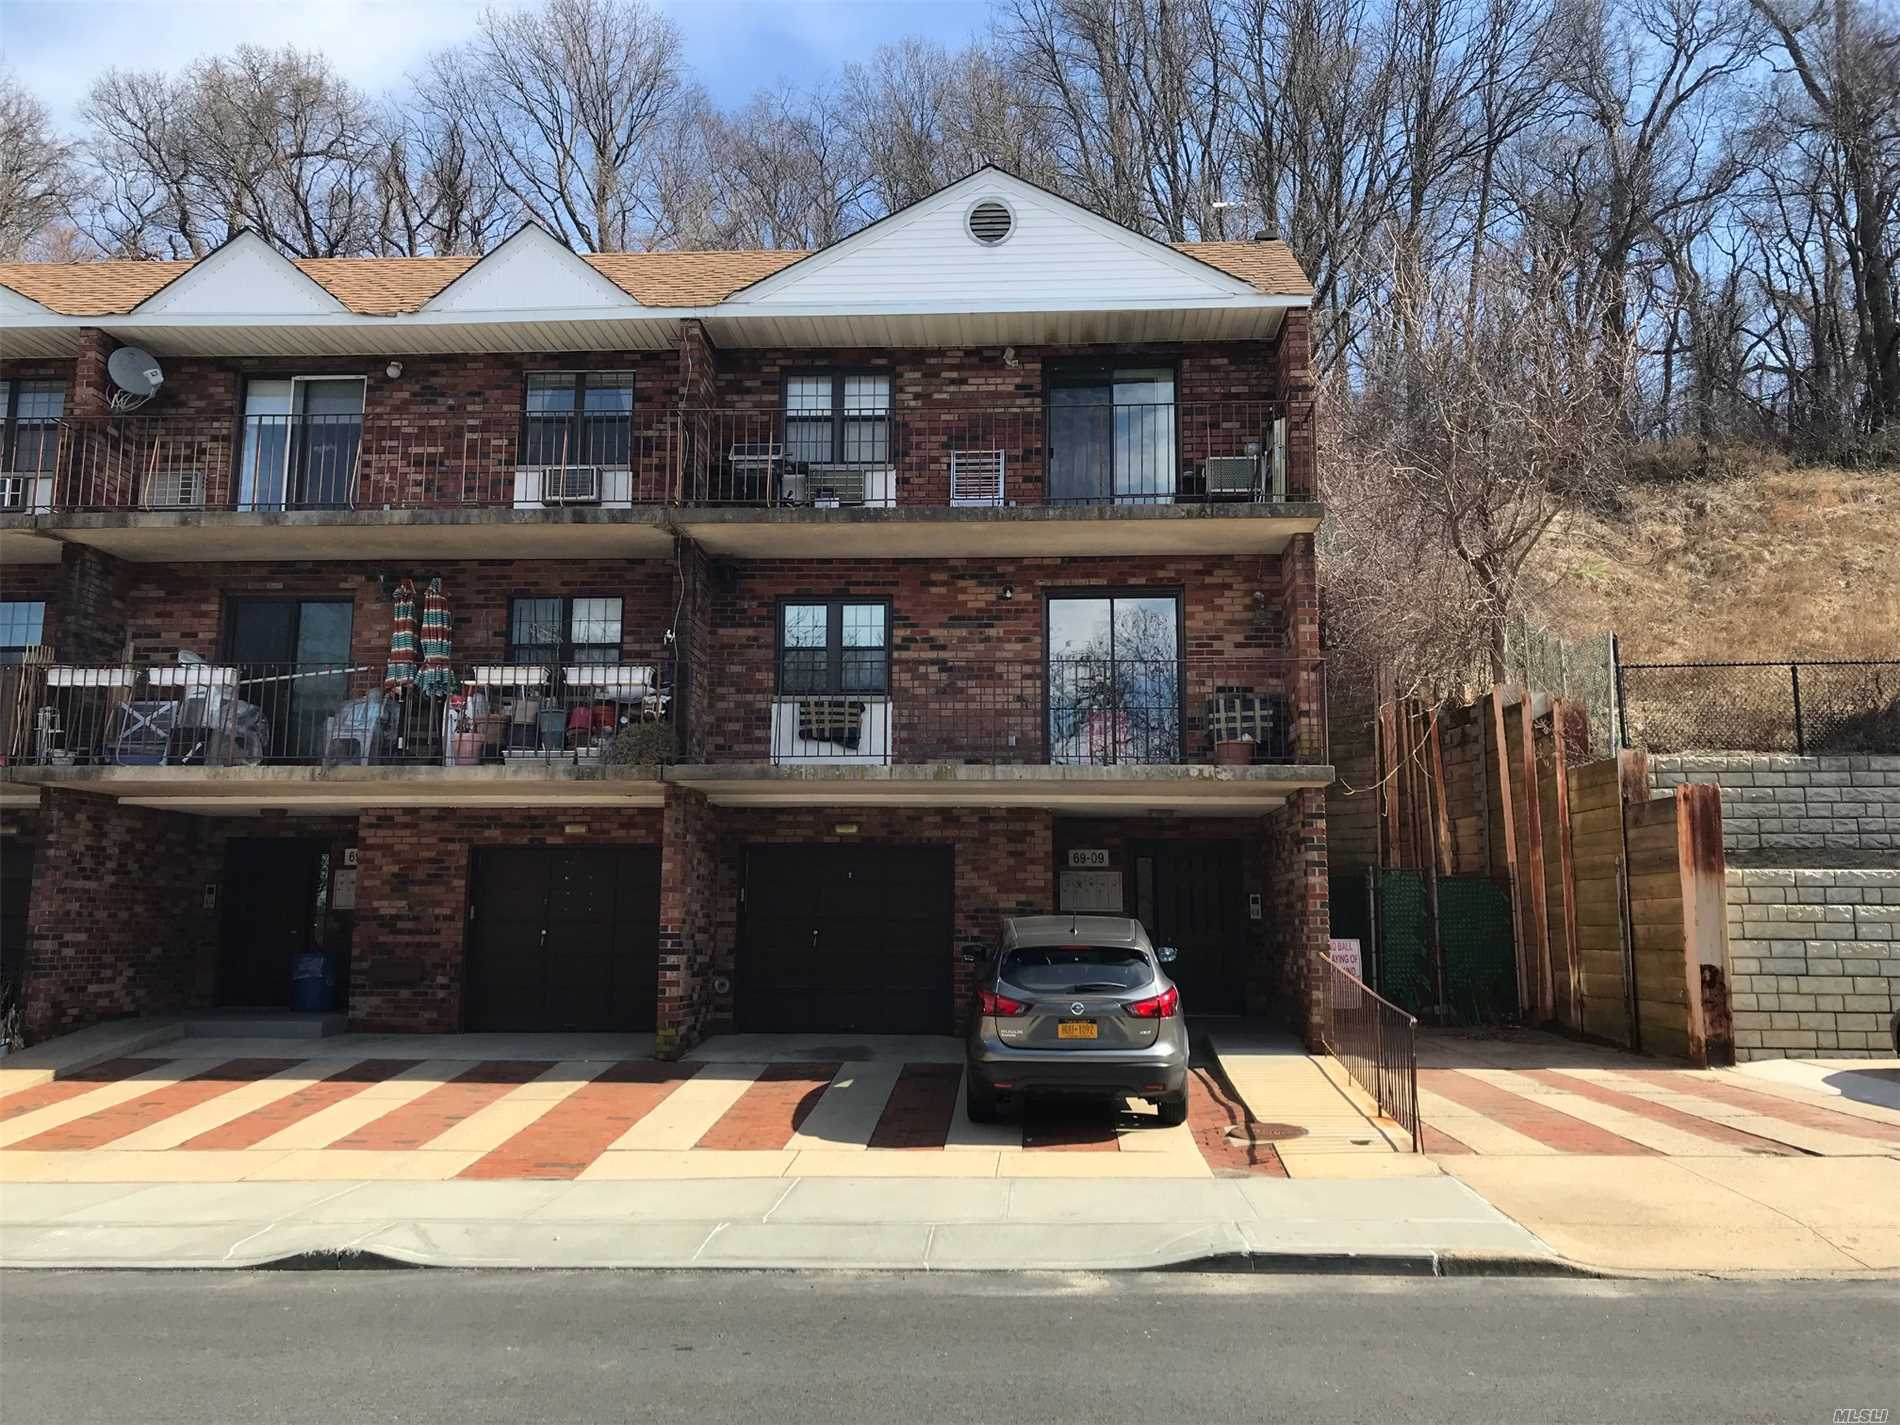 Sale May Be Subject To Term & Conditions Of An Offering Plan. Beautiful Brick One Bedroom Condo, One Full Bath , Kitchen , Granite Counter Top, Lr/Dr , Wood Floors,  Parking Space Available . In The Heart Of Douglaston W/ Balcony Includes Private Storage Room In Bsmt With The Washer/ Dryer. Great Location Access To Major Highways. Near Shopping Center.